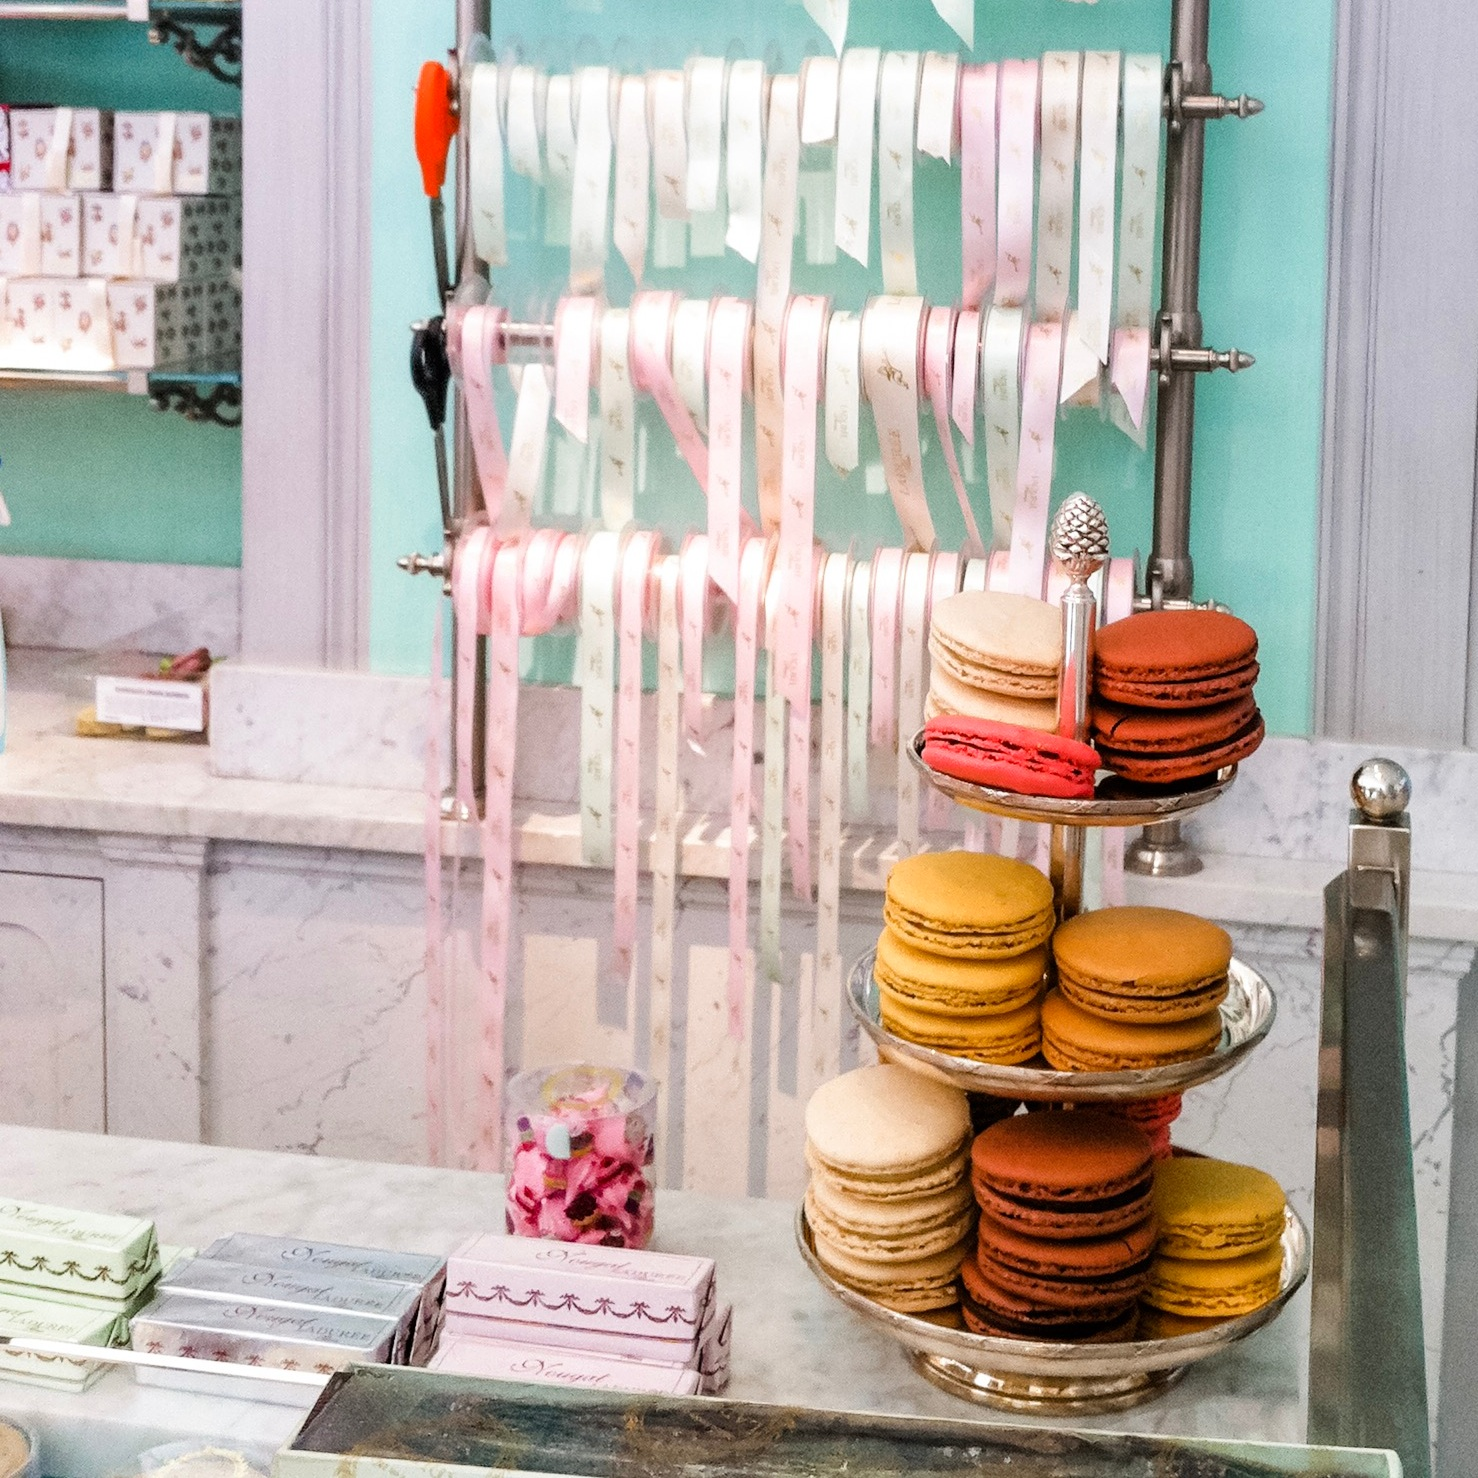 Laduree ribbons and macarons in the Le Bon Marche